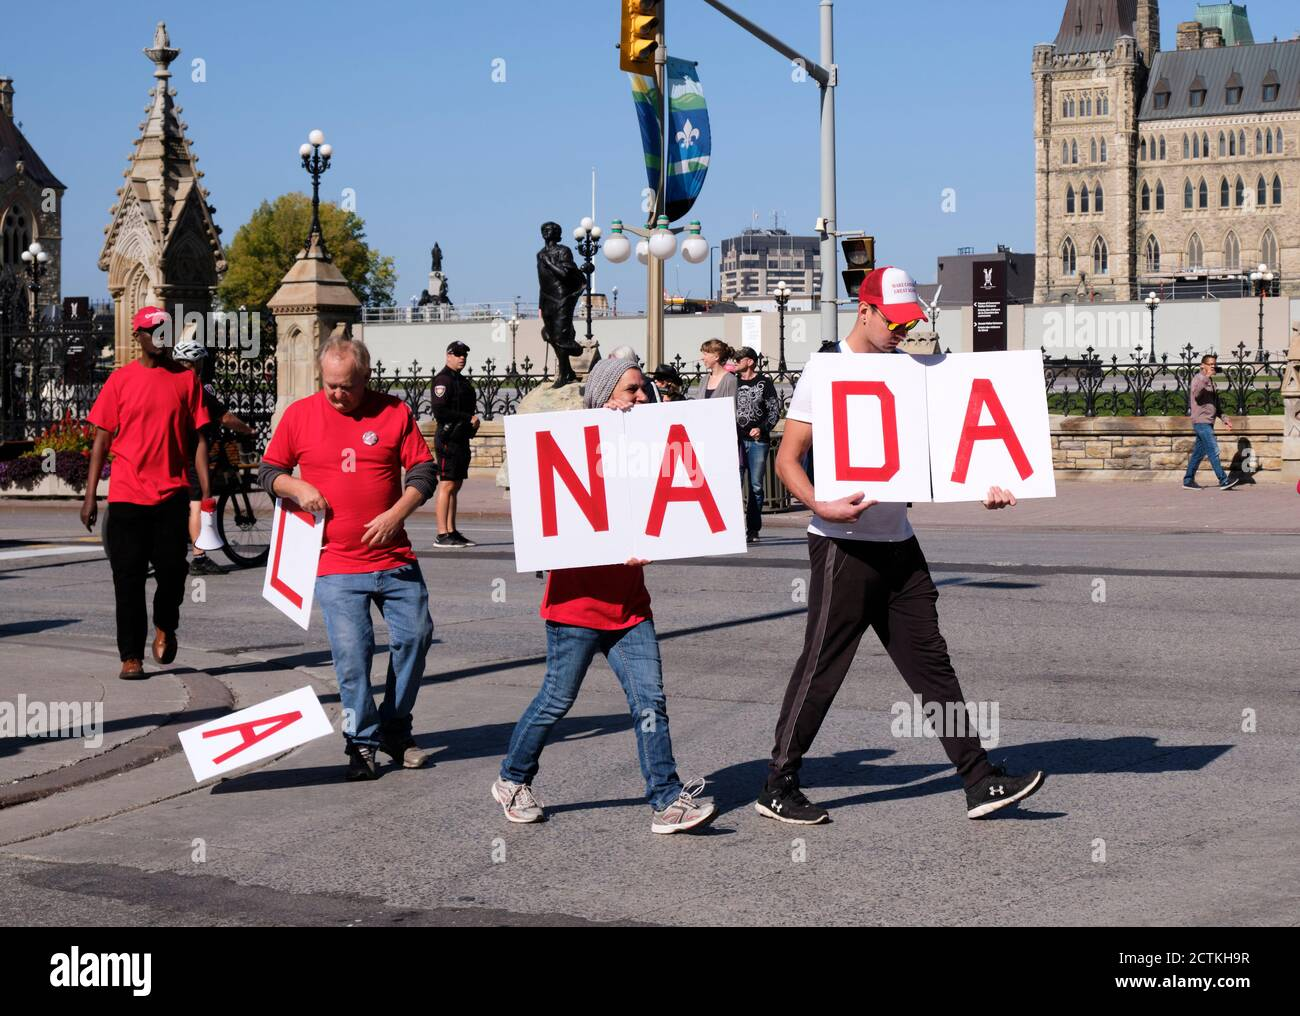 protesters-in-front-of-canadian-parliament-with-letter-to-spell-canada-where-one-protester-drops-his-letters-on-pavement-part-of-protest-message-2CTKH9R.jpg